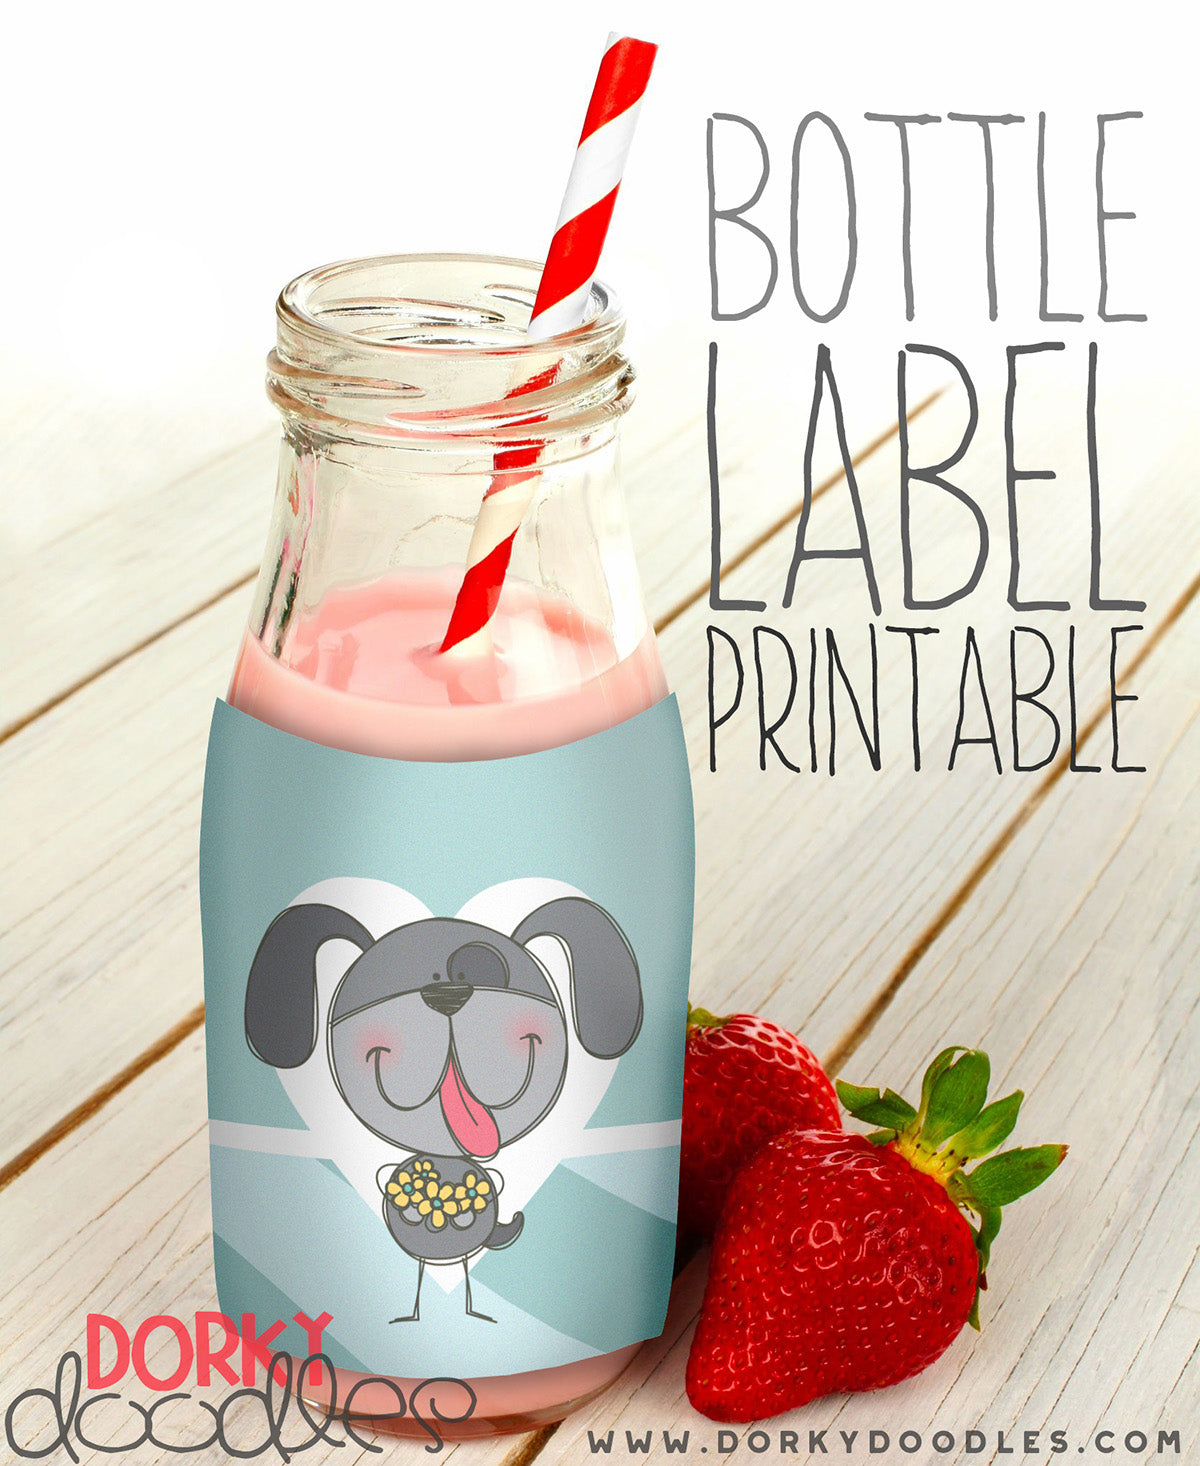 free printable bottle label with puppy